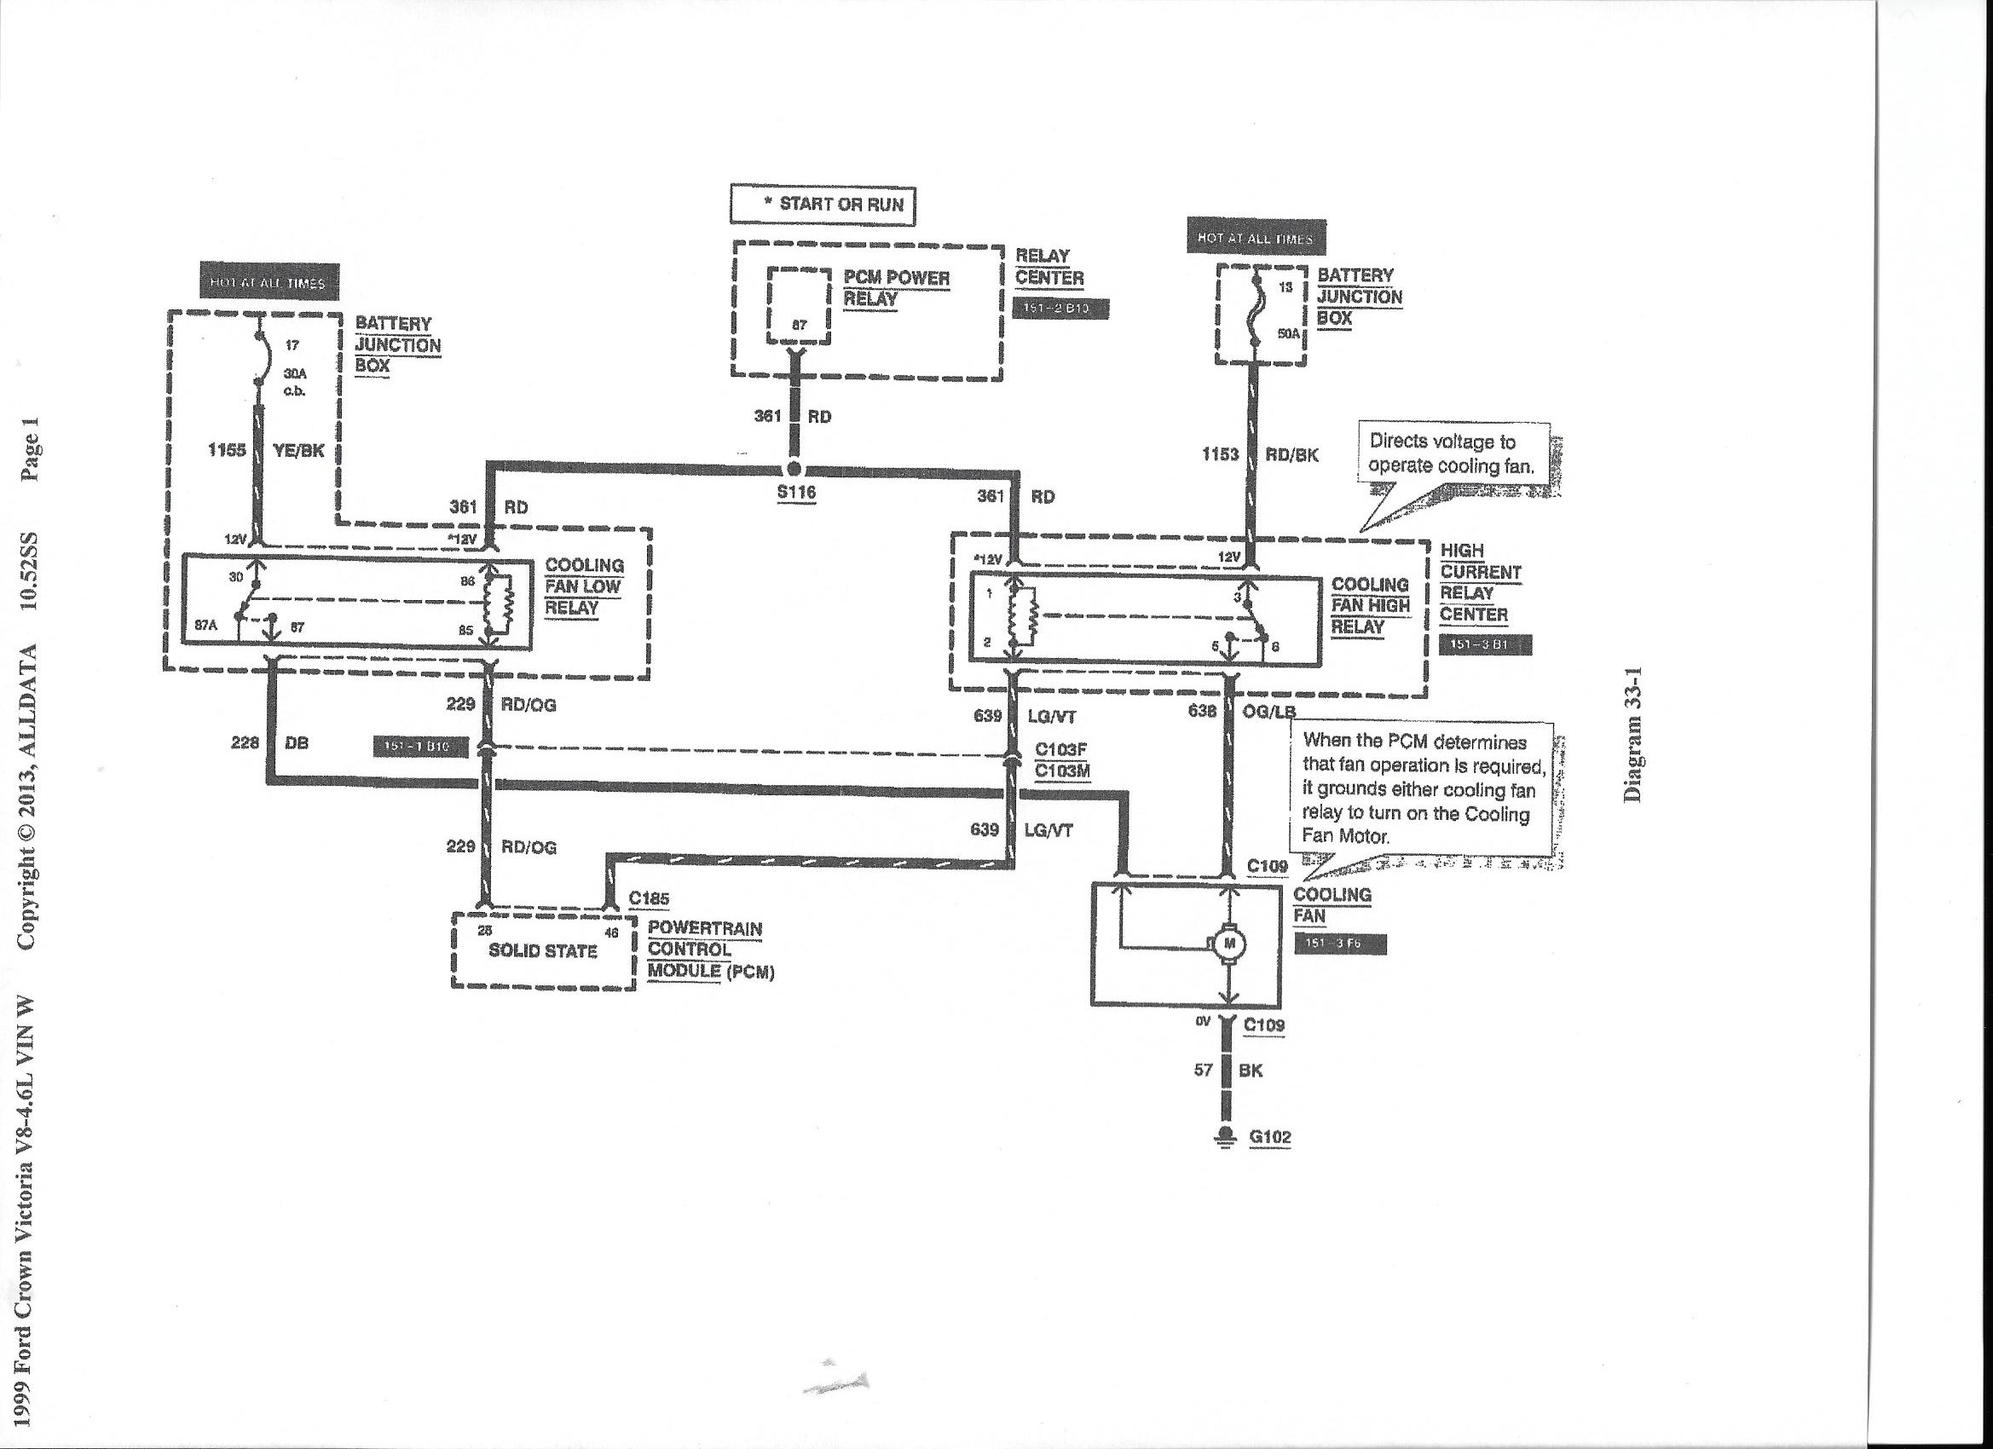 Chevy Hhr 2006 Door Locks Wiring Diagram together with 2000 Ford Expedition Fuse Locations furthermore 438534 Power Memory Seat Wiring Help as well Stereo Wiring Diagram For 1997 Chevy Silverado Html moreover BI8d 13282. on 2006 chevy silverado radio wiring diagram